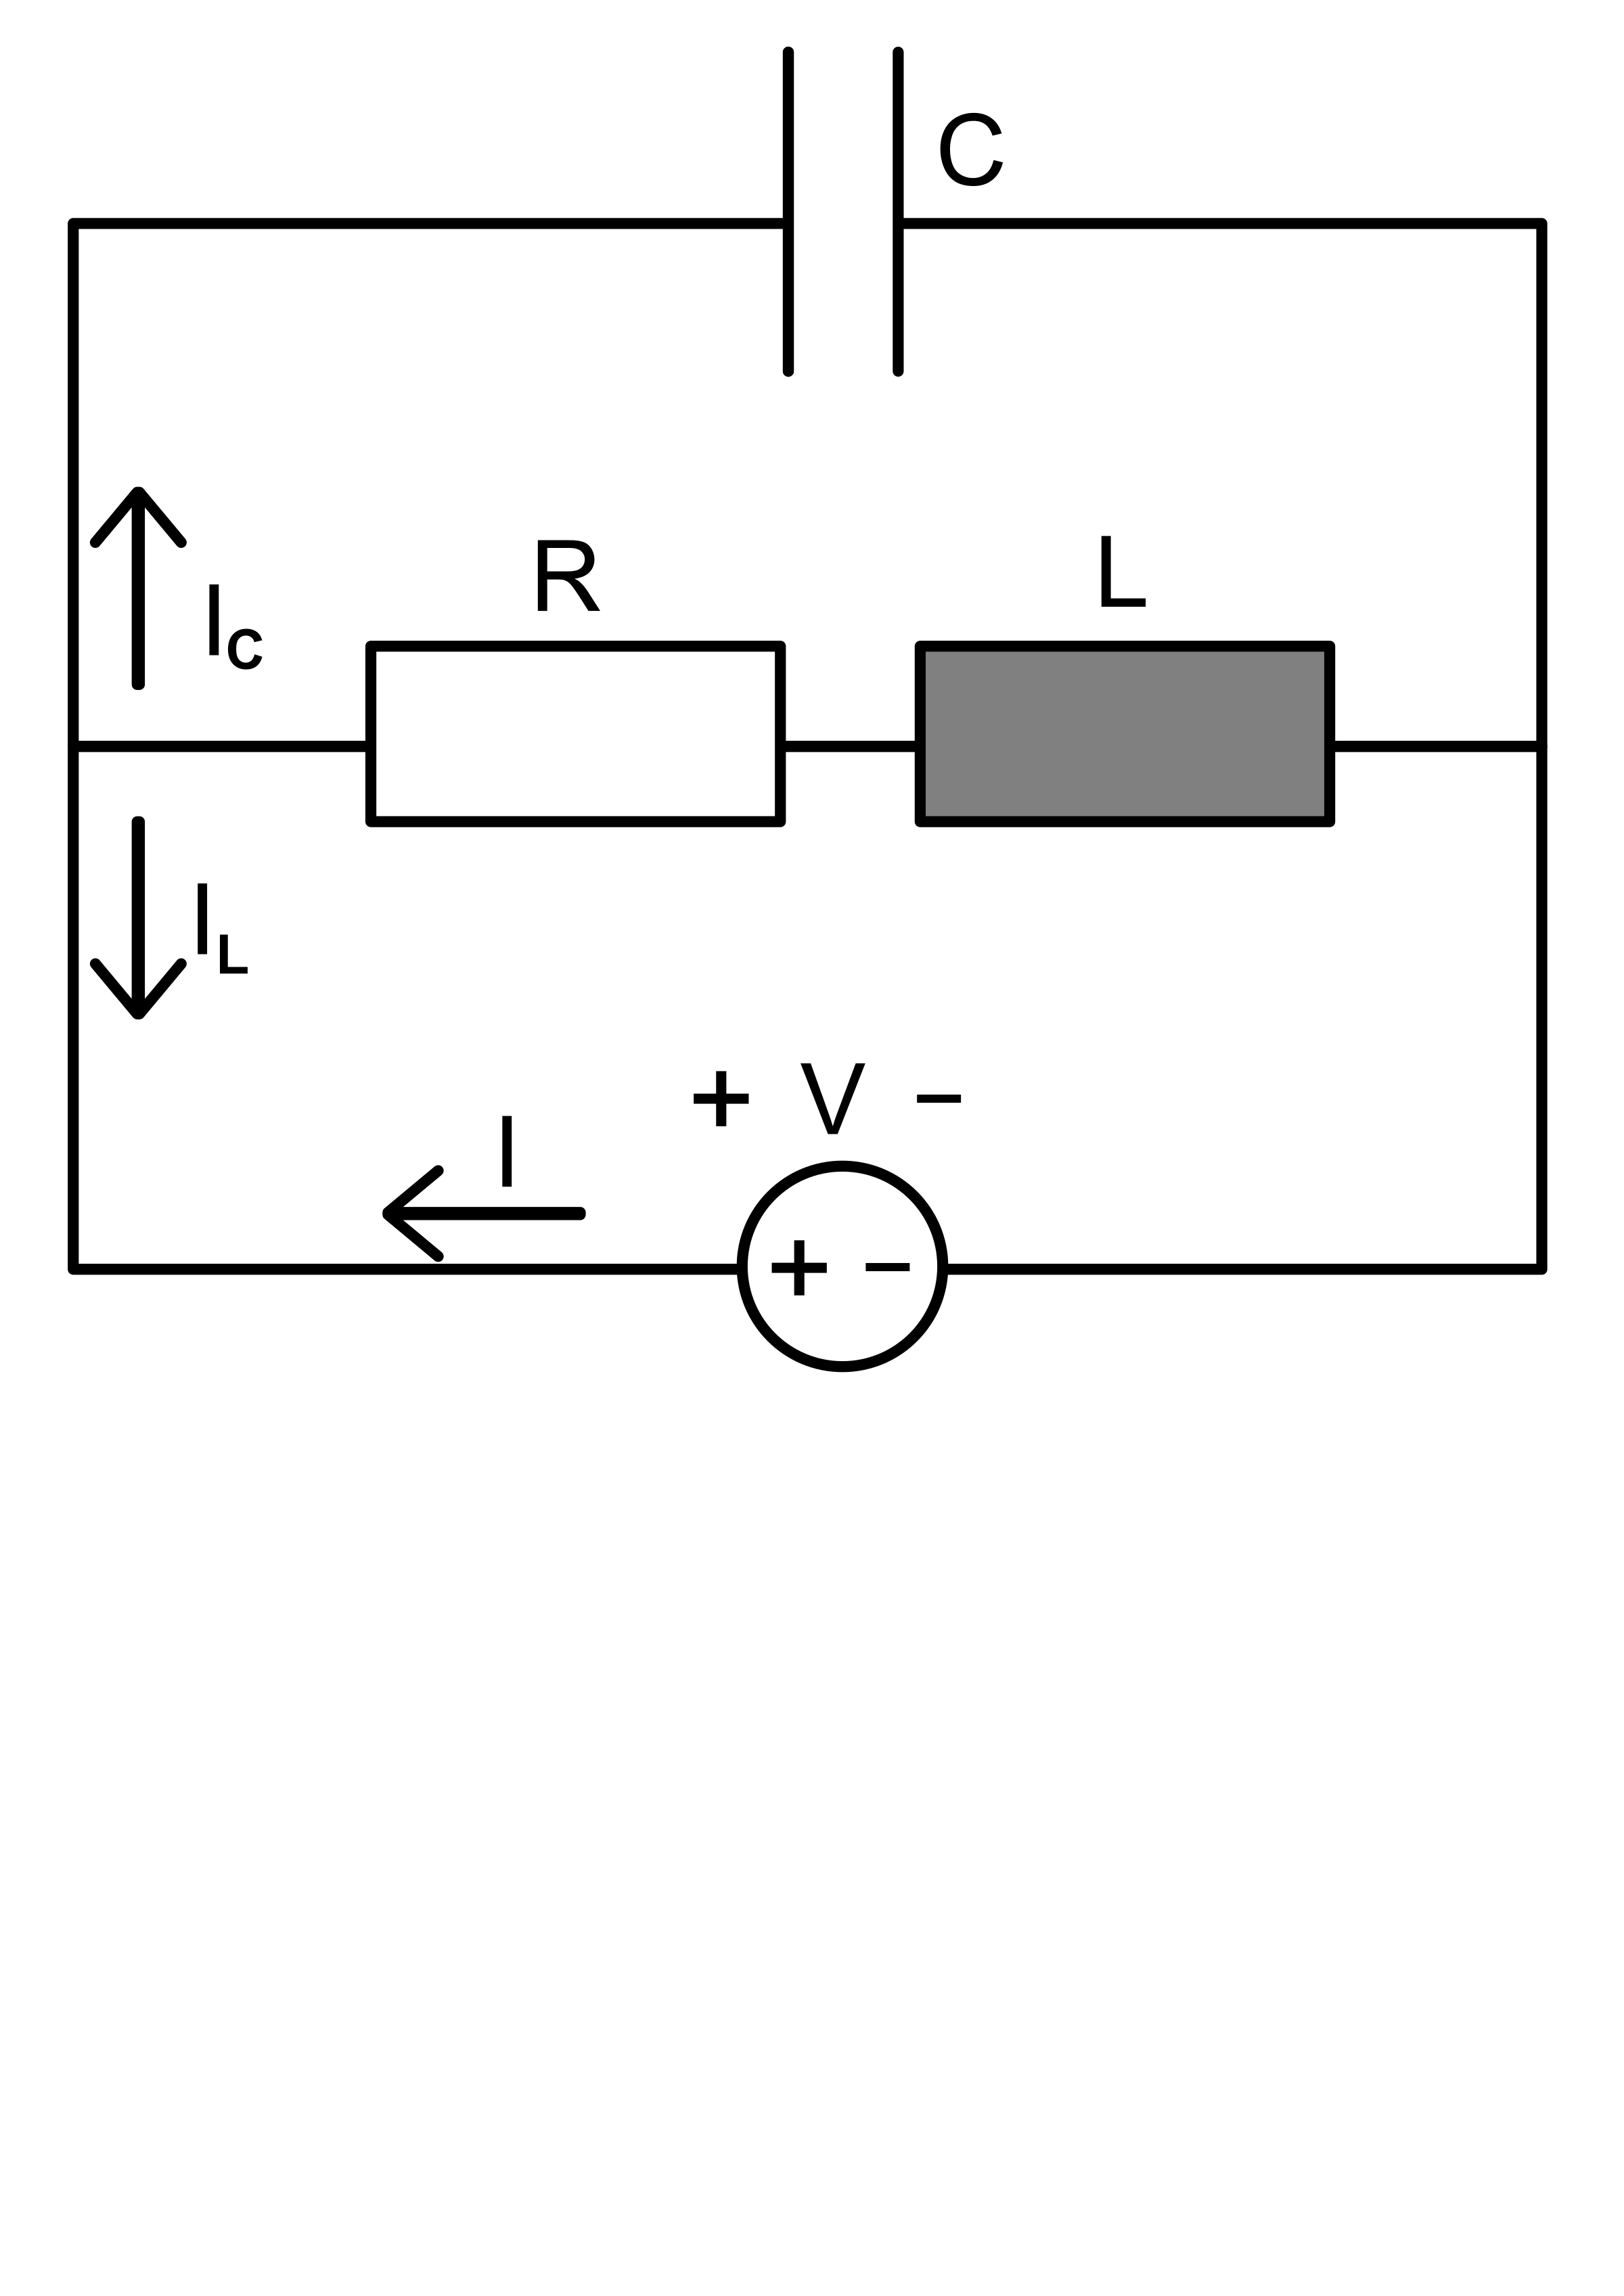 Circuits vector electric circuit. Collection of free electrification